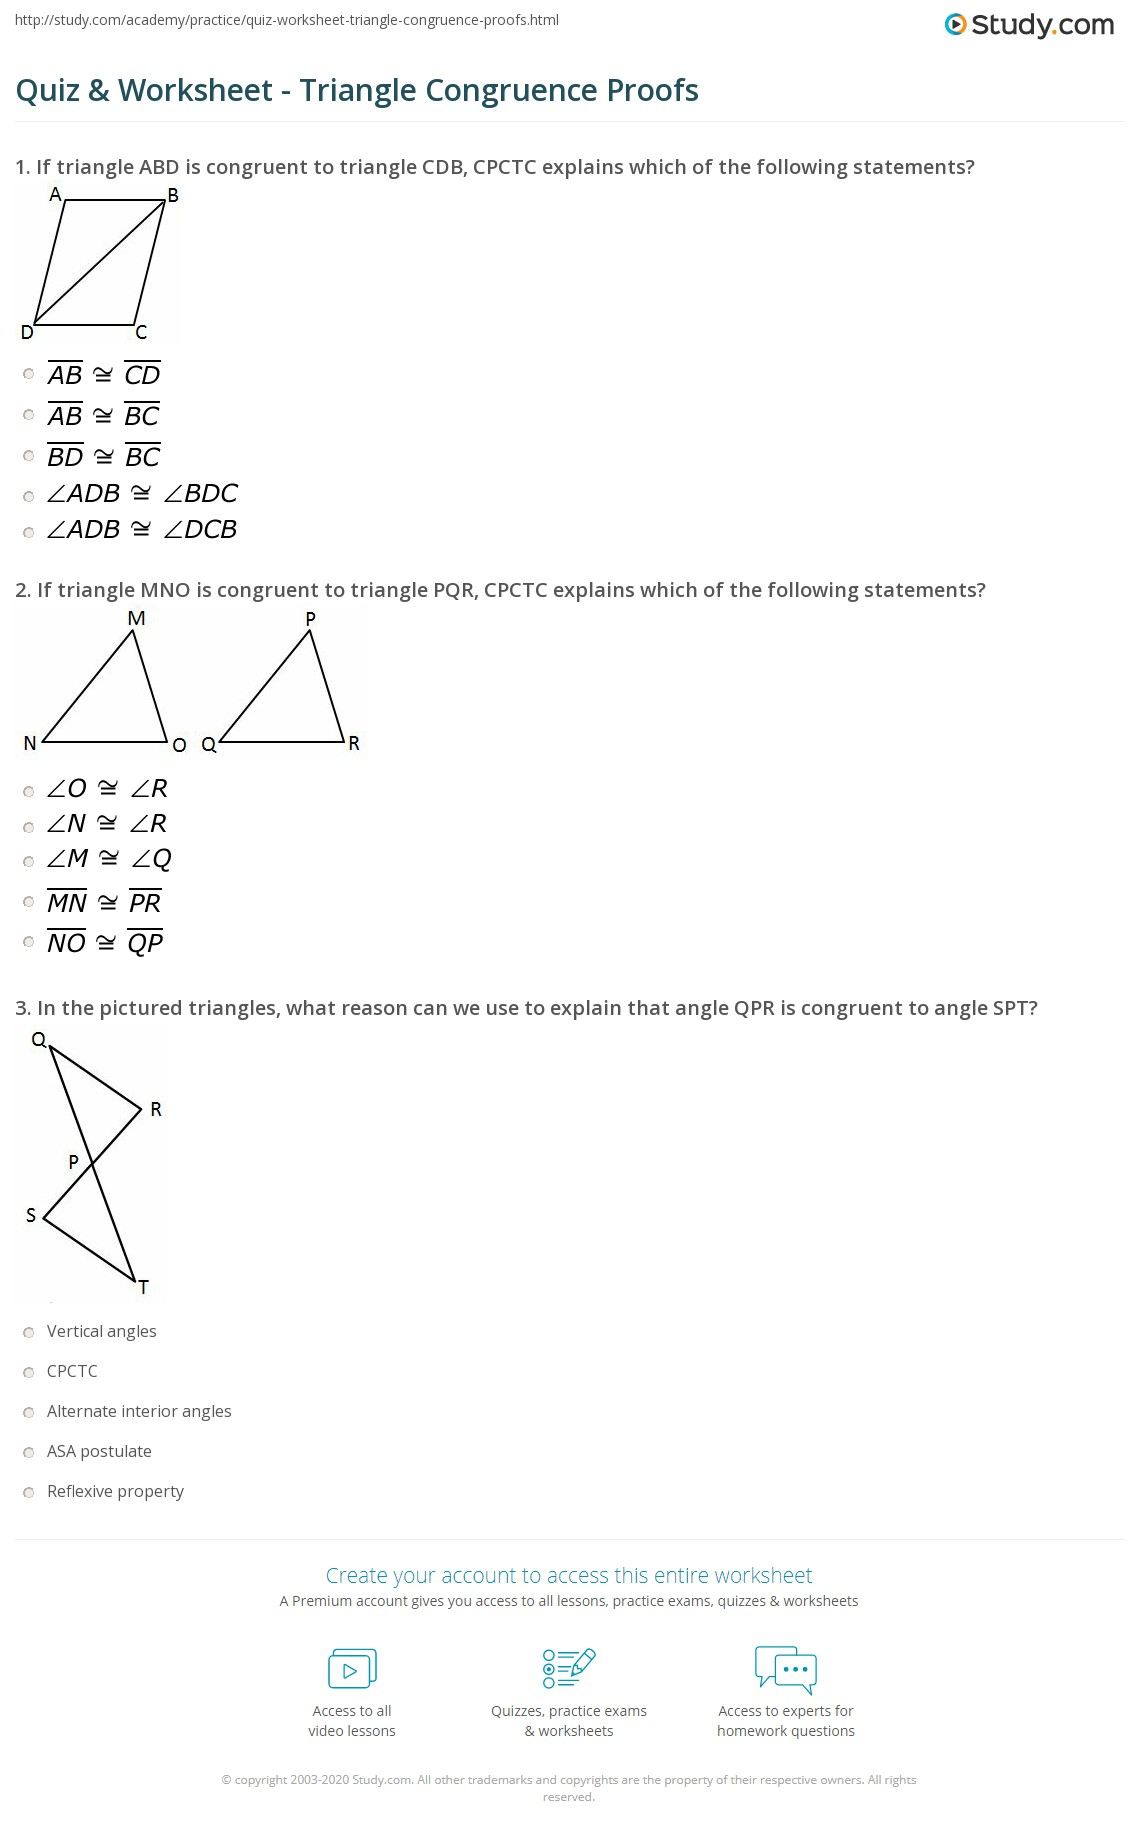 Worksheets Triangle Congruence Proofs Worksheet quiz worksheet triangle congruence proofs study com print corresponding parts of congruent triangles worksheet